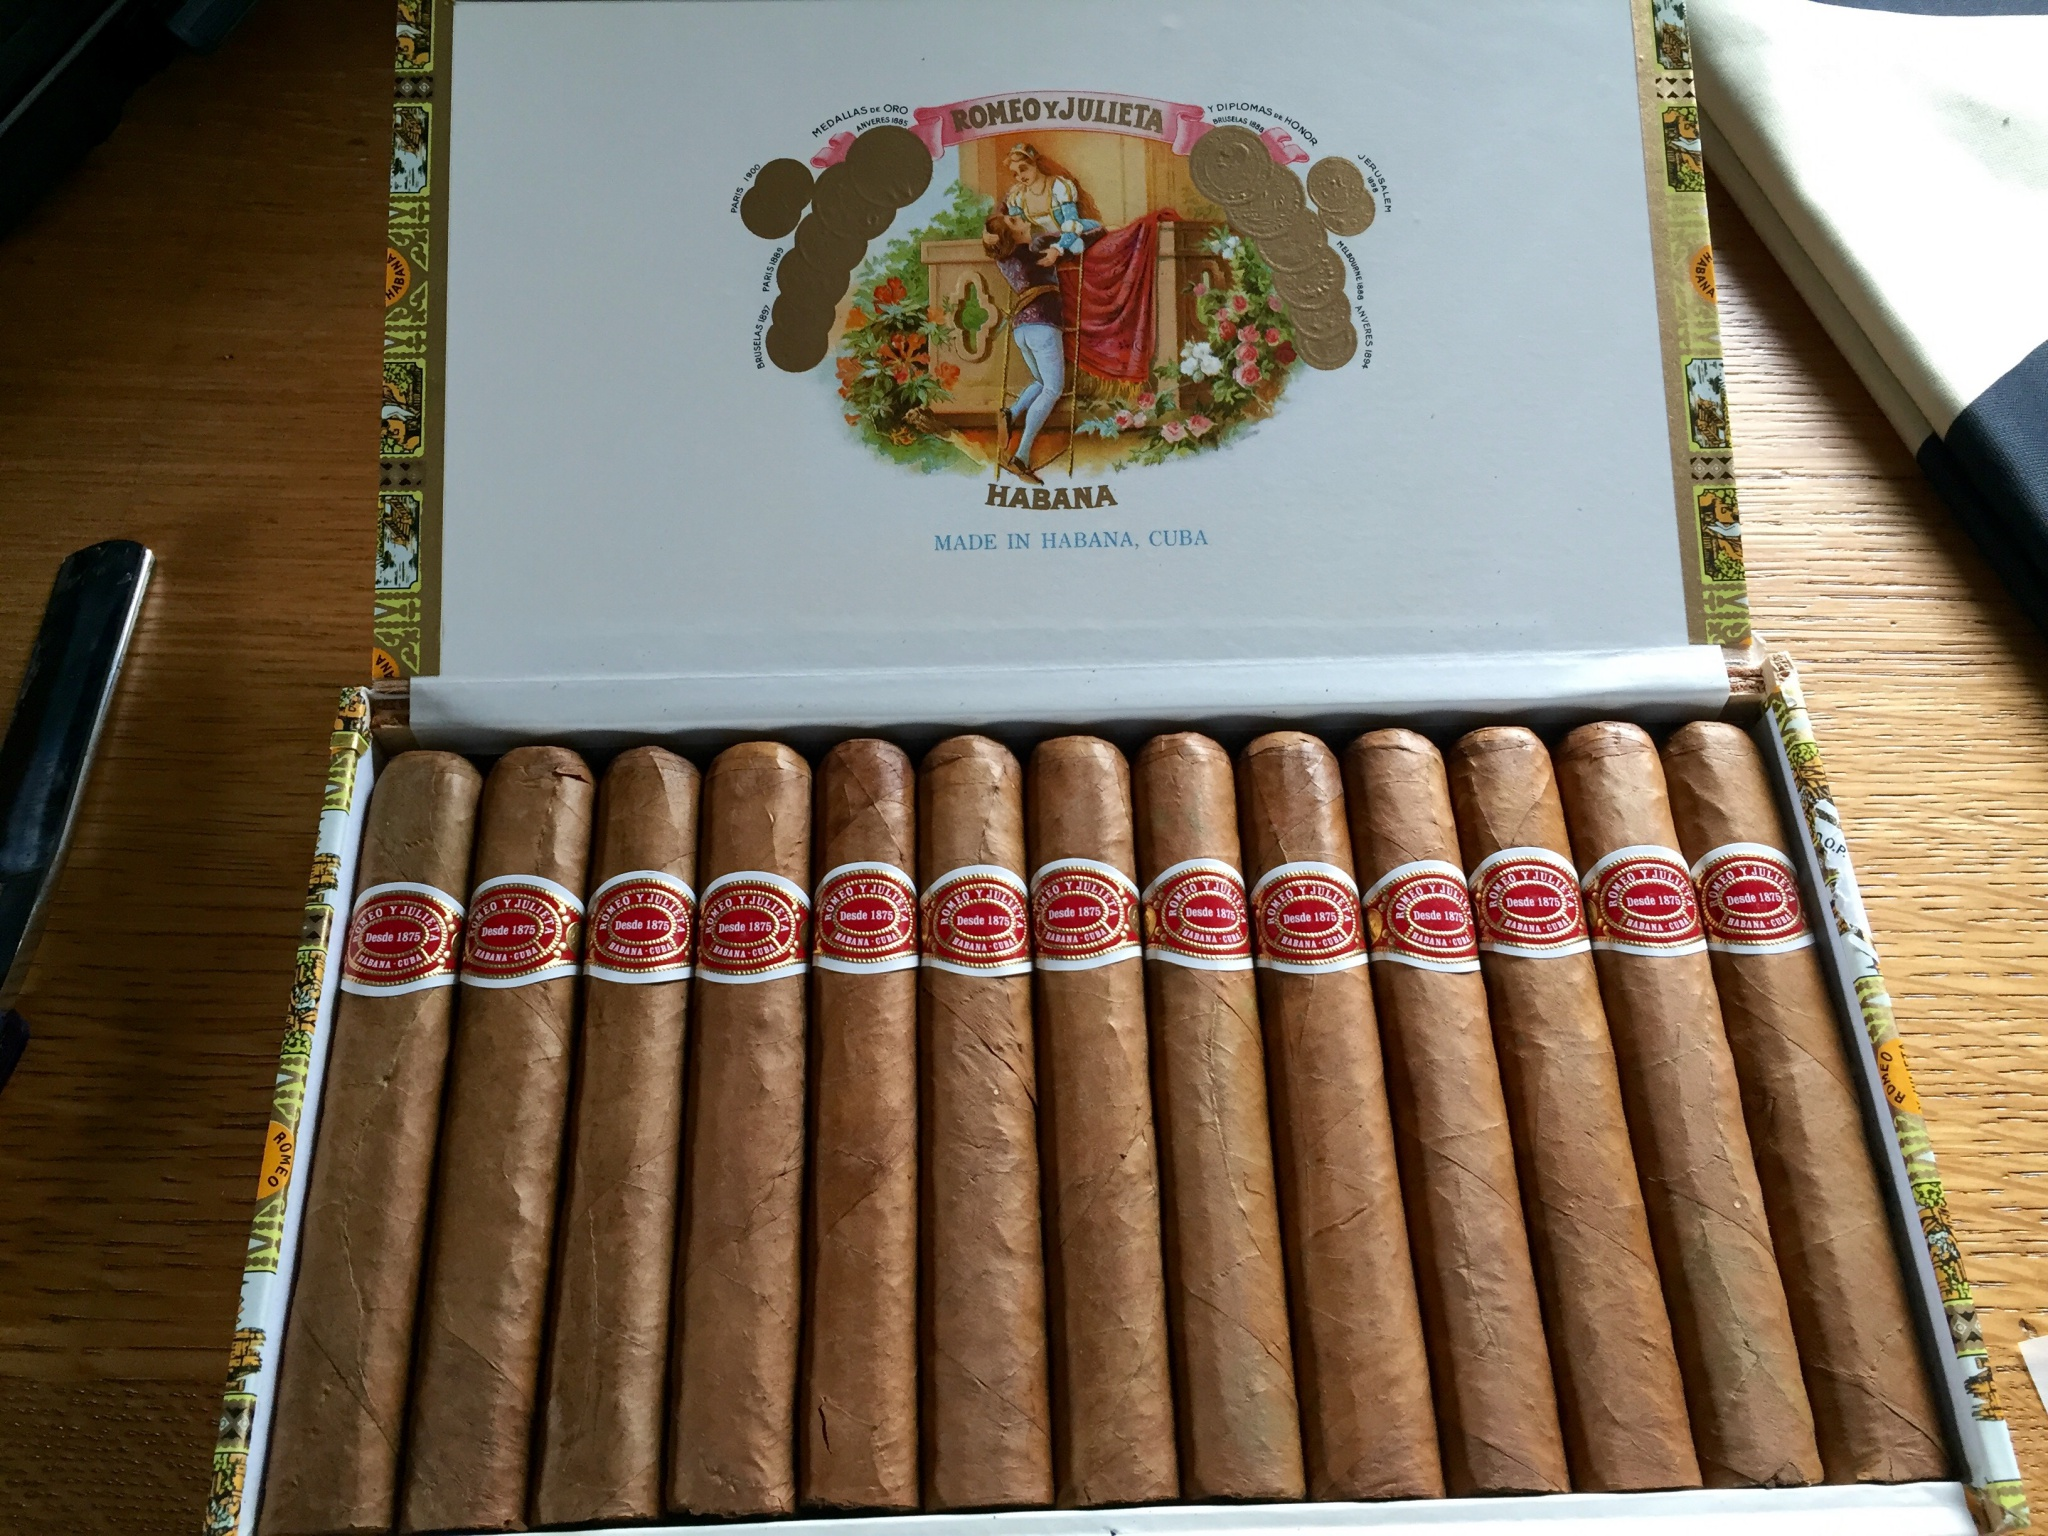 What's your latest Cuban Cigar purchase?-image.jpg